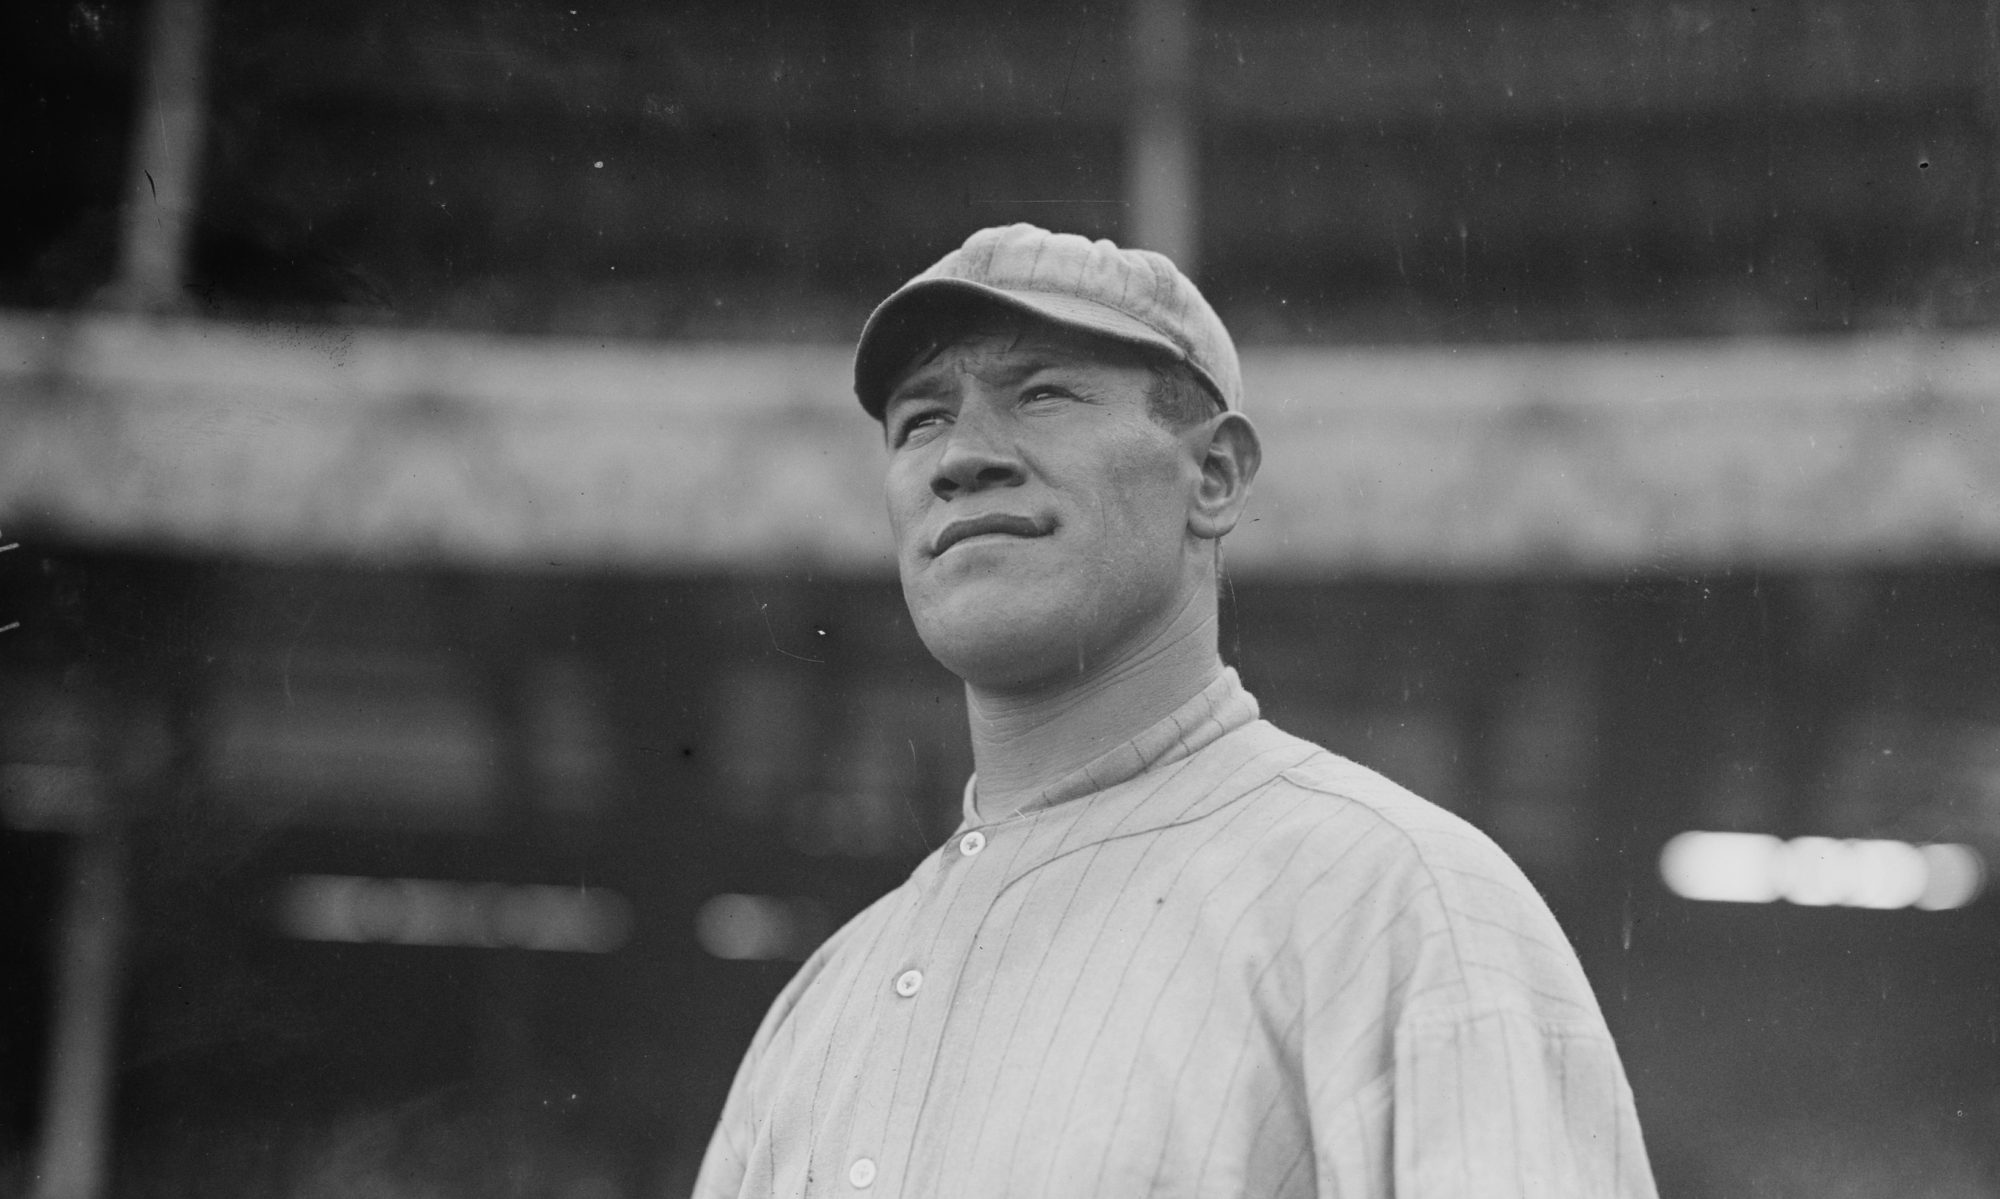 Jim Thorpe is one of the first multi-sports professional athletes in the world